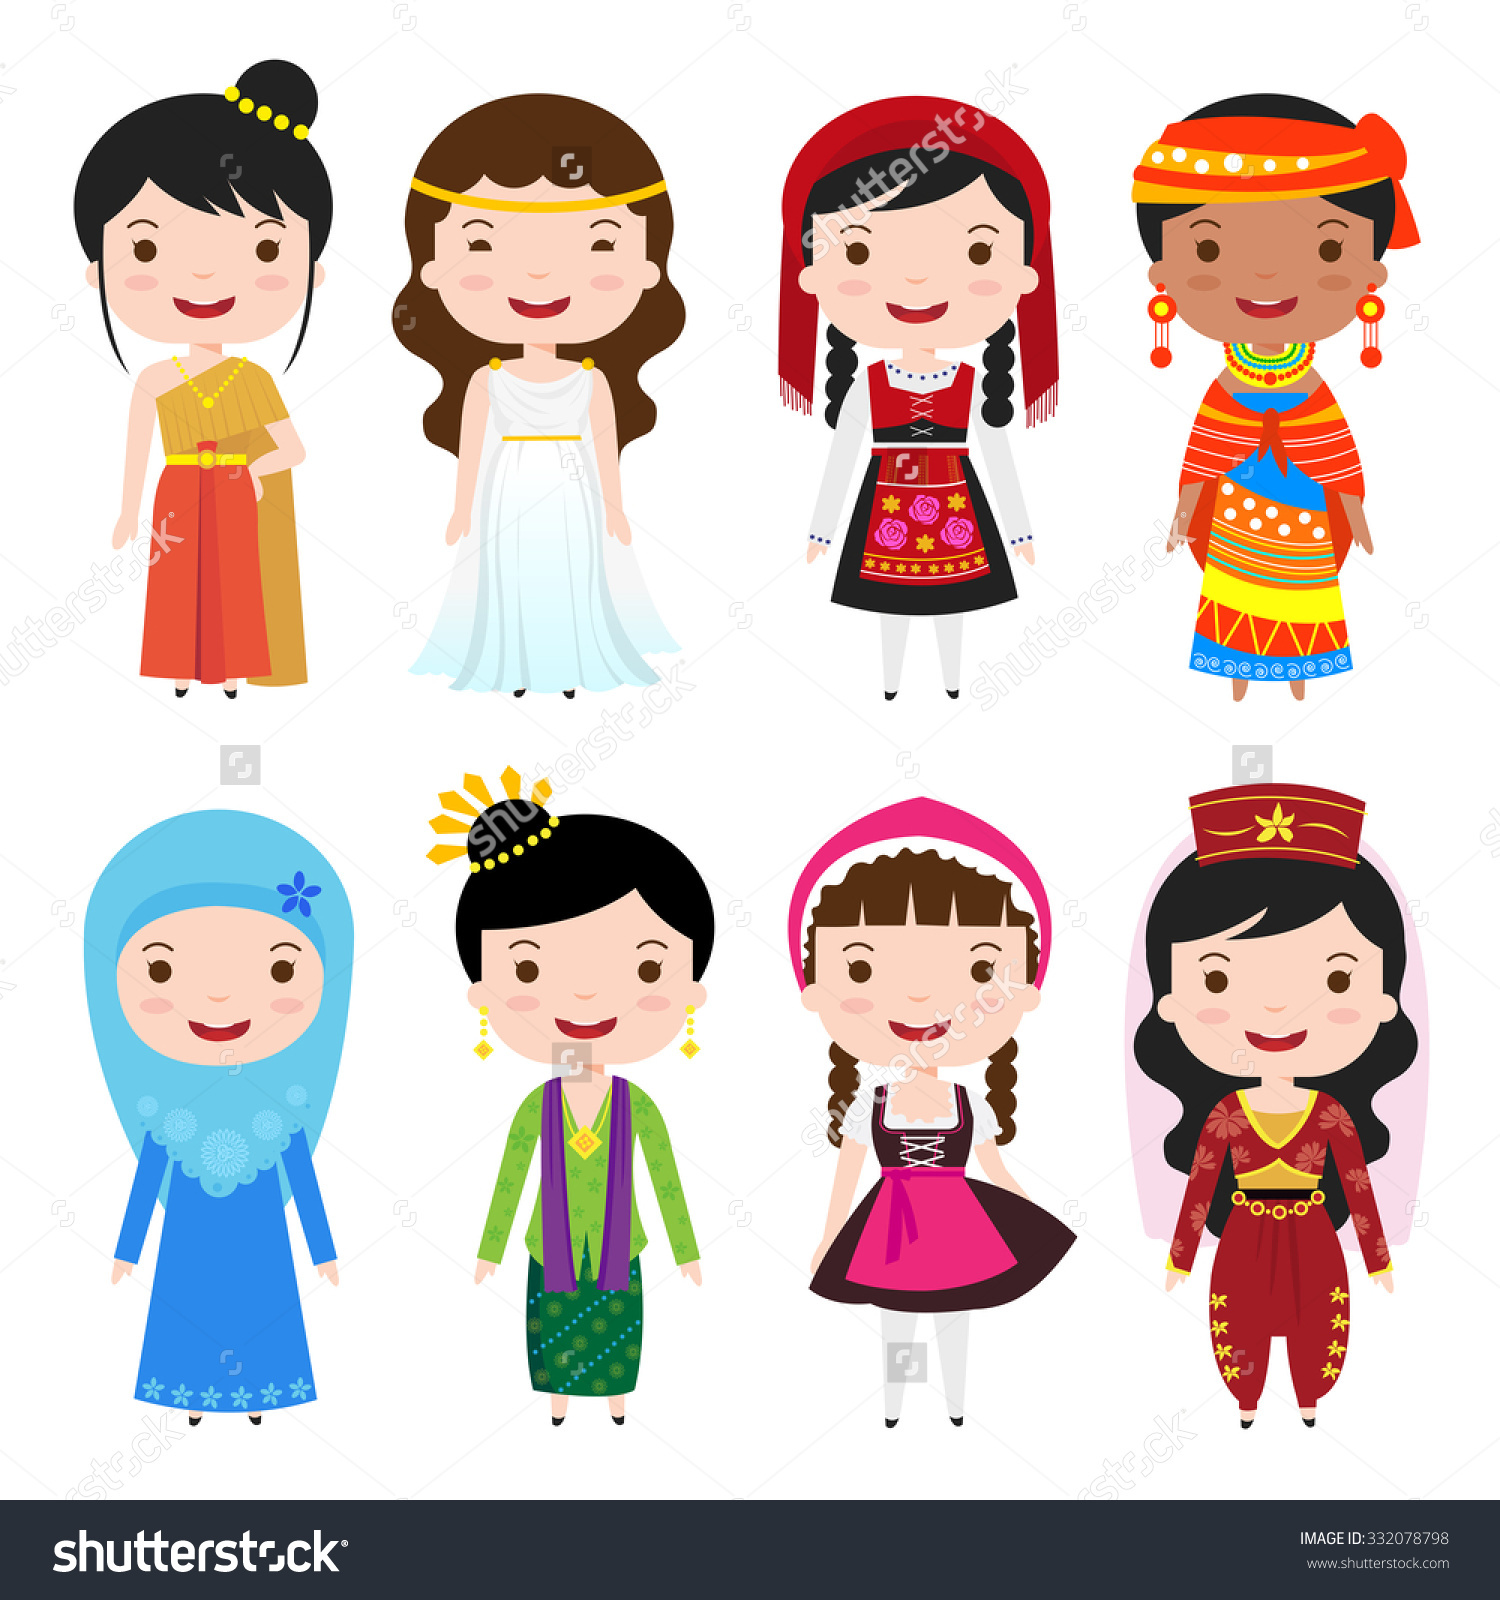 Traditional costumes clipart image library stock Traditional costumes clipart - ClipartFest image library stock